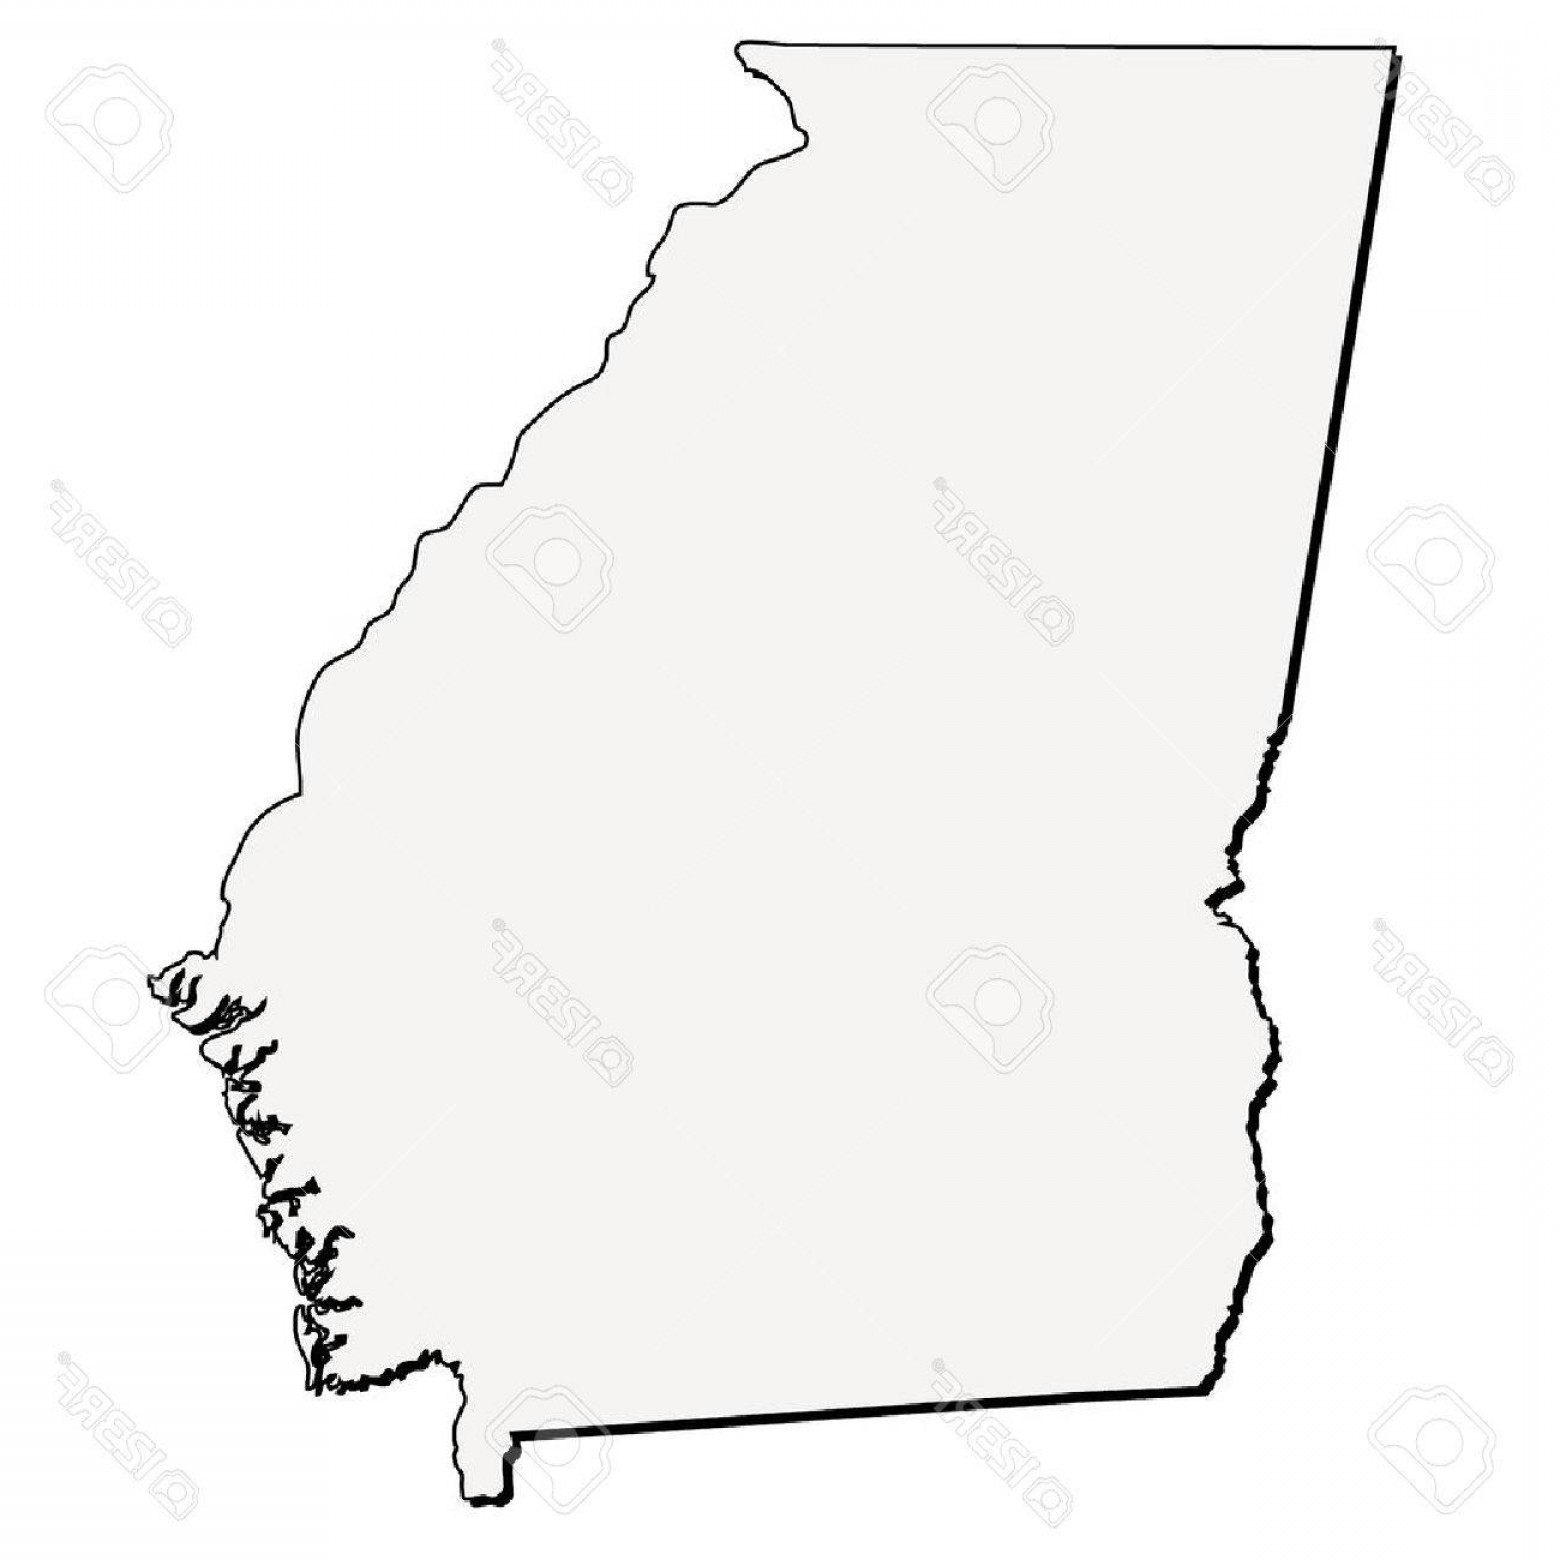 Arizona State Outline Vector: Photostock Vector Vector Georgia State D Outline Map